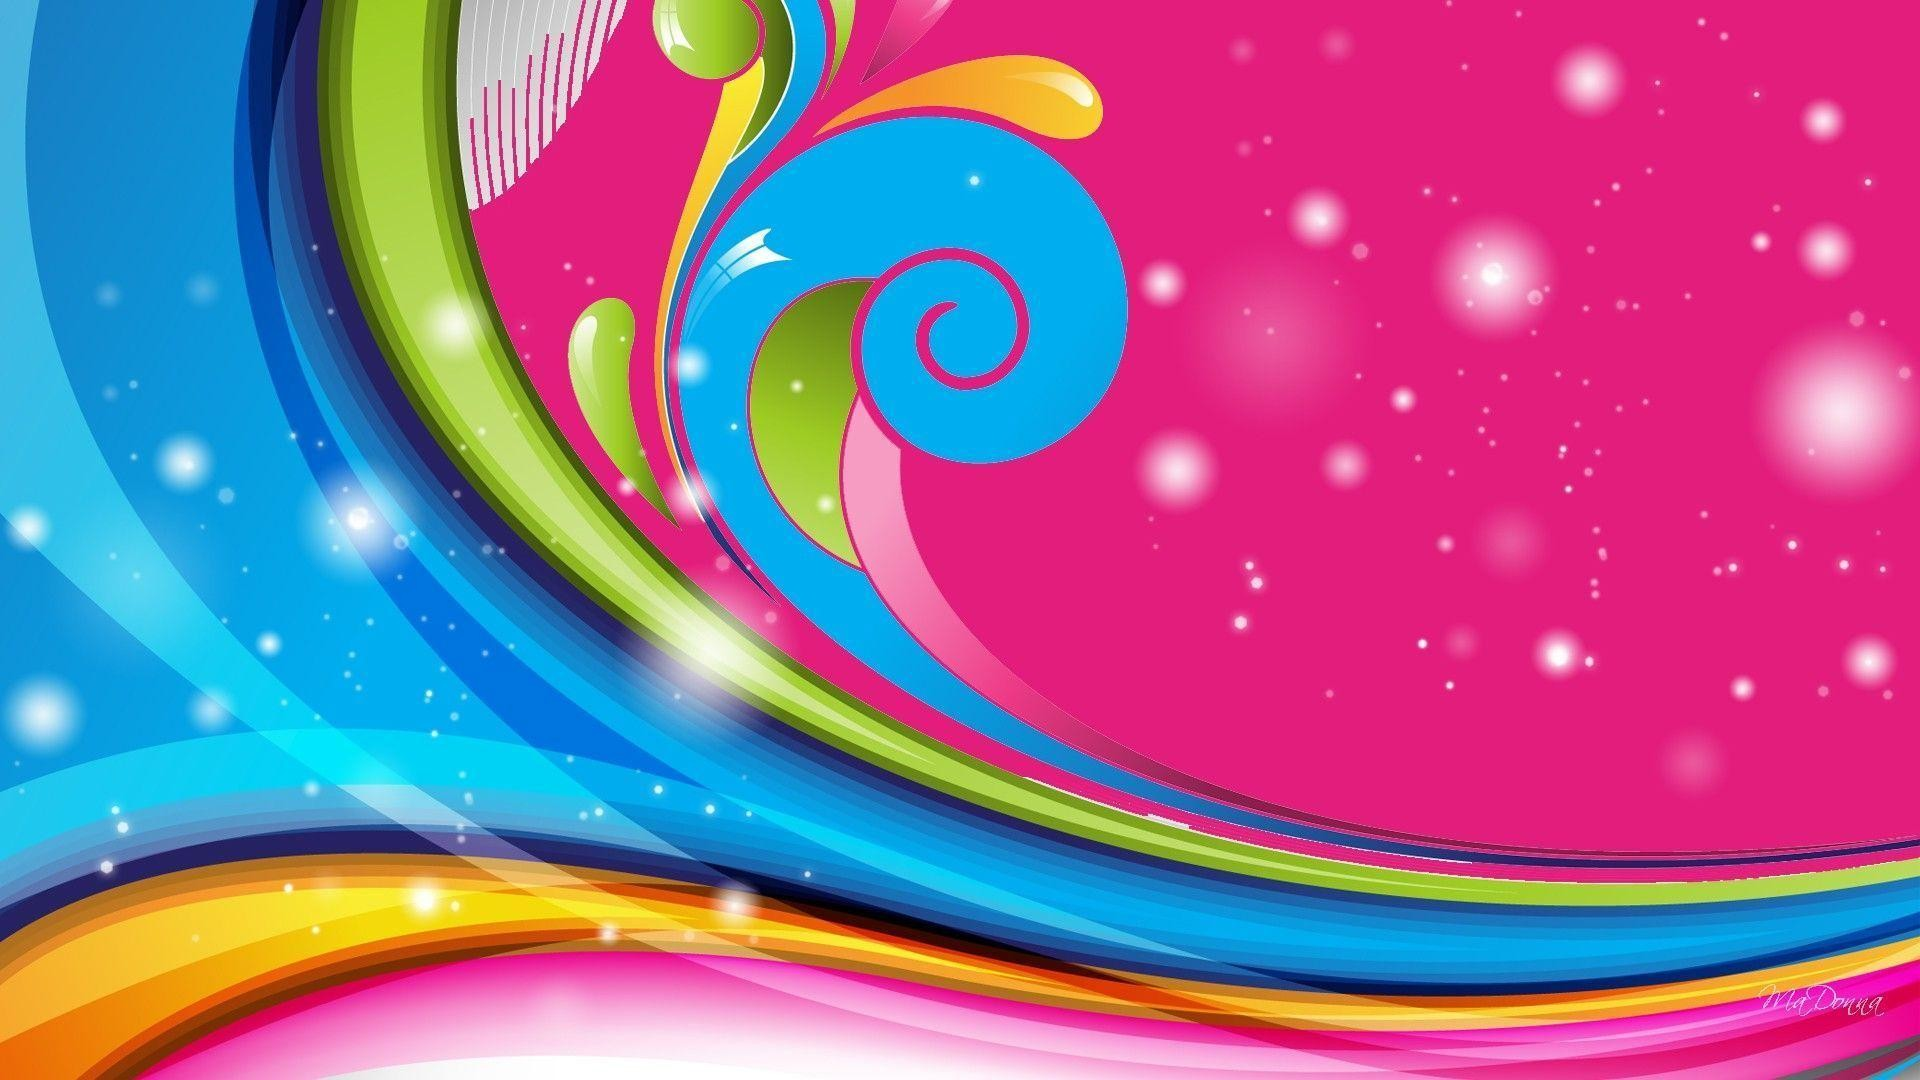 Abstract Colorful Wallpaper 4 3043 Images HD Wallpapers .